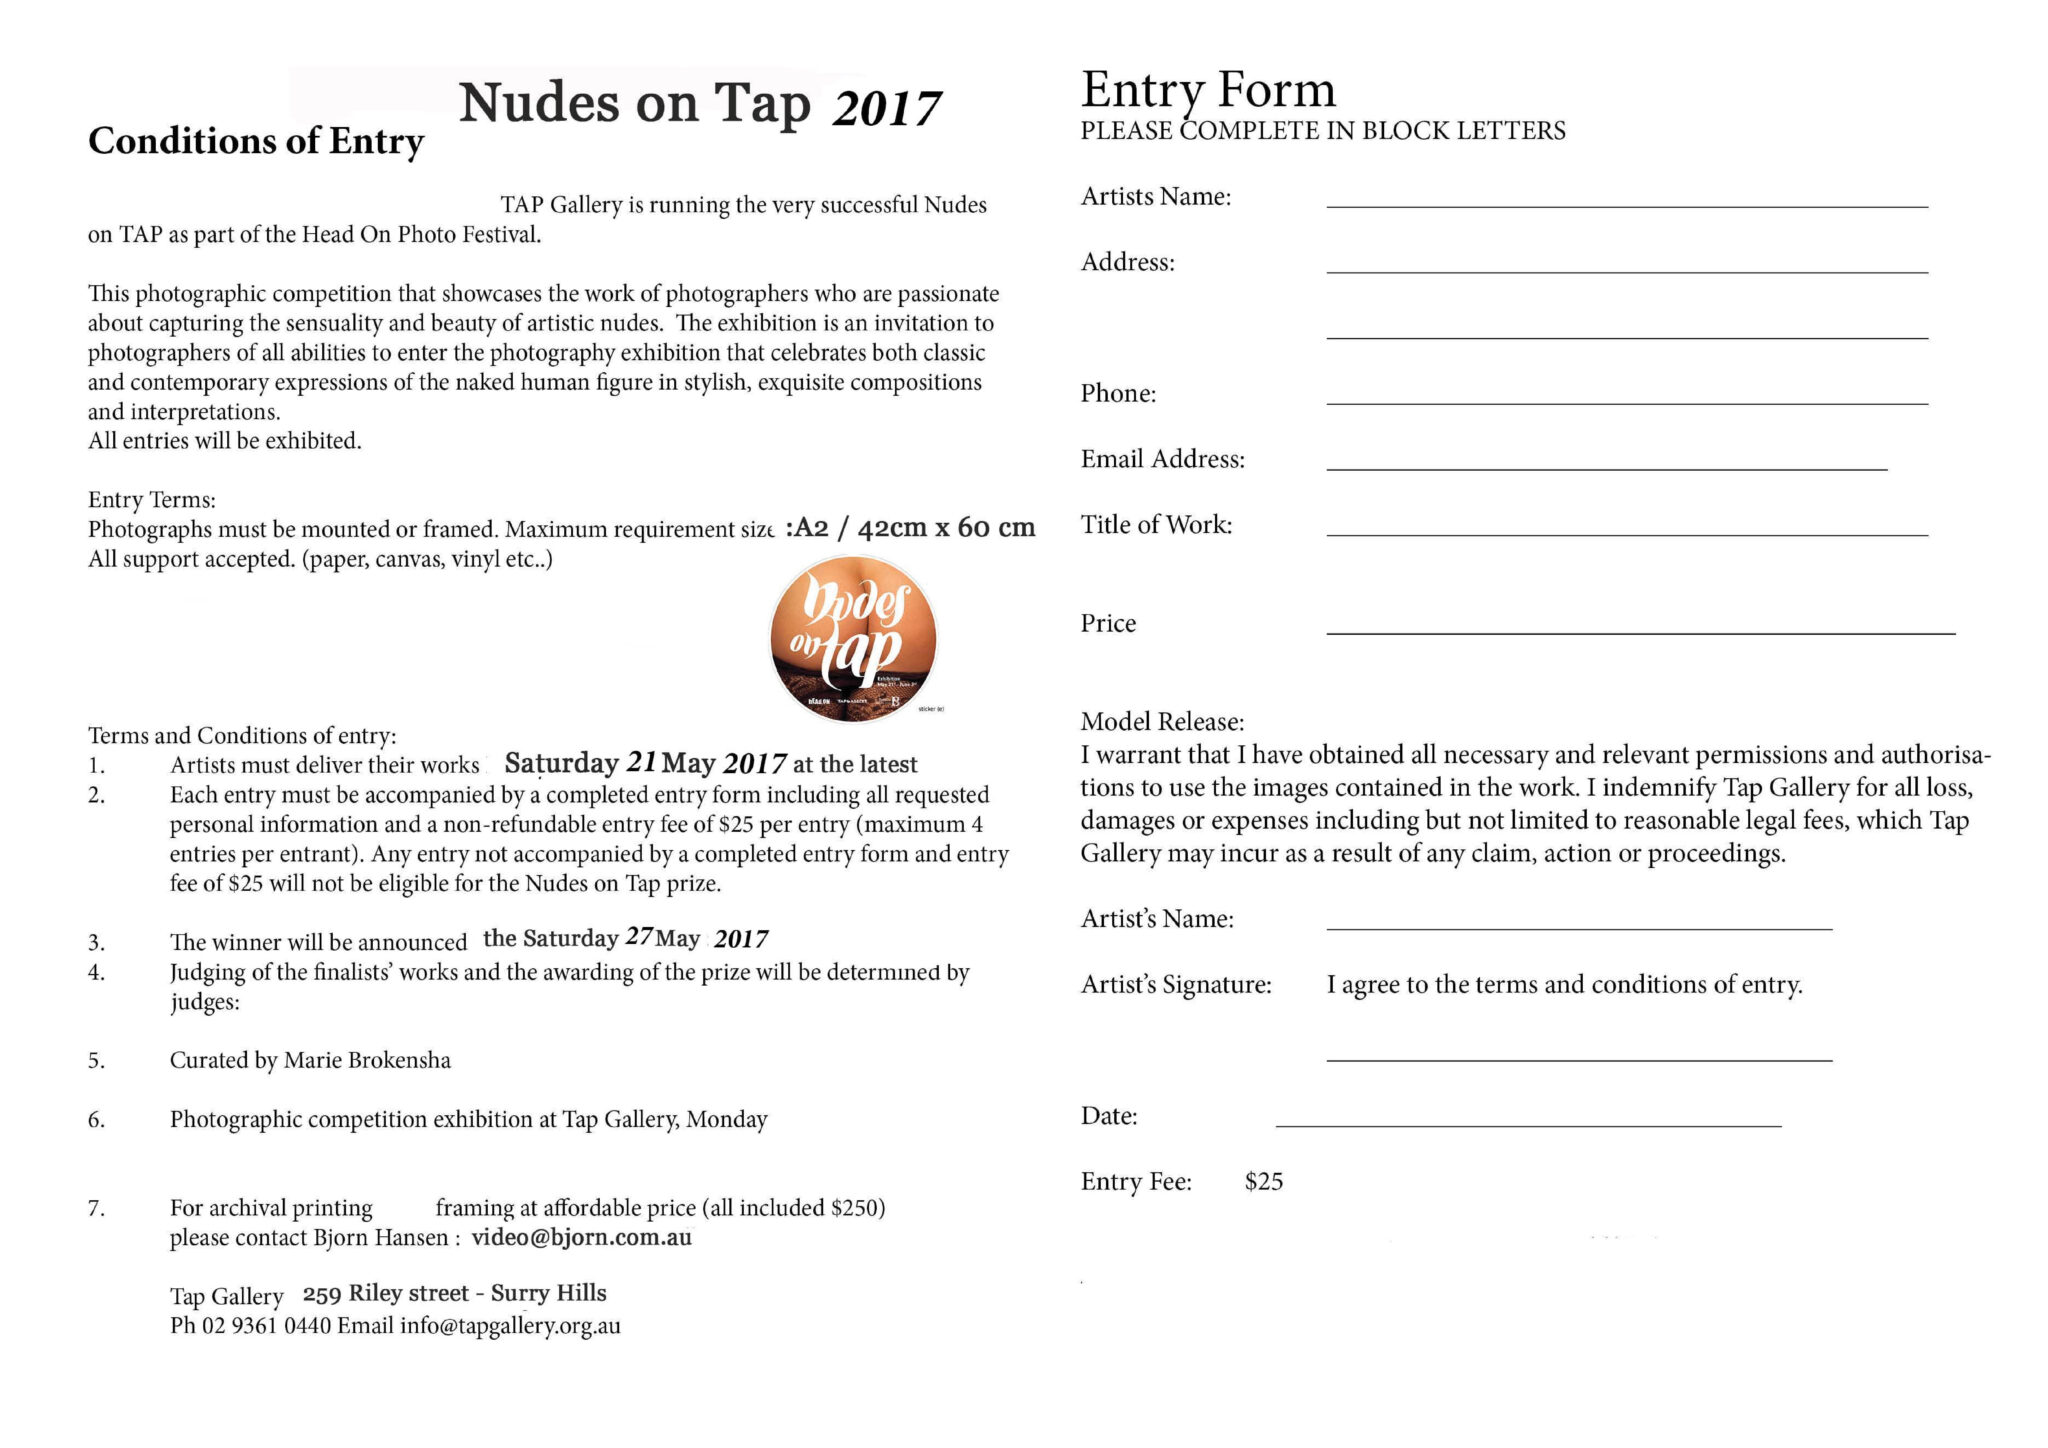 Nudes entry form 2017